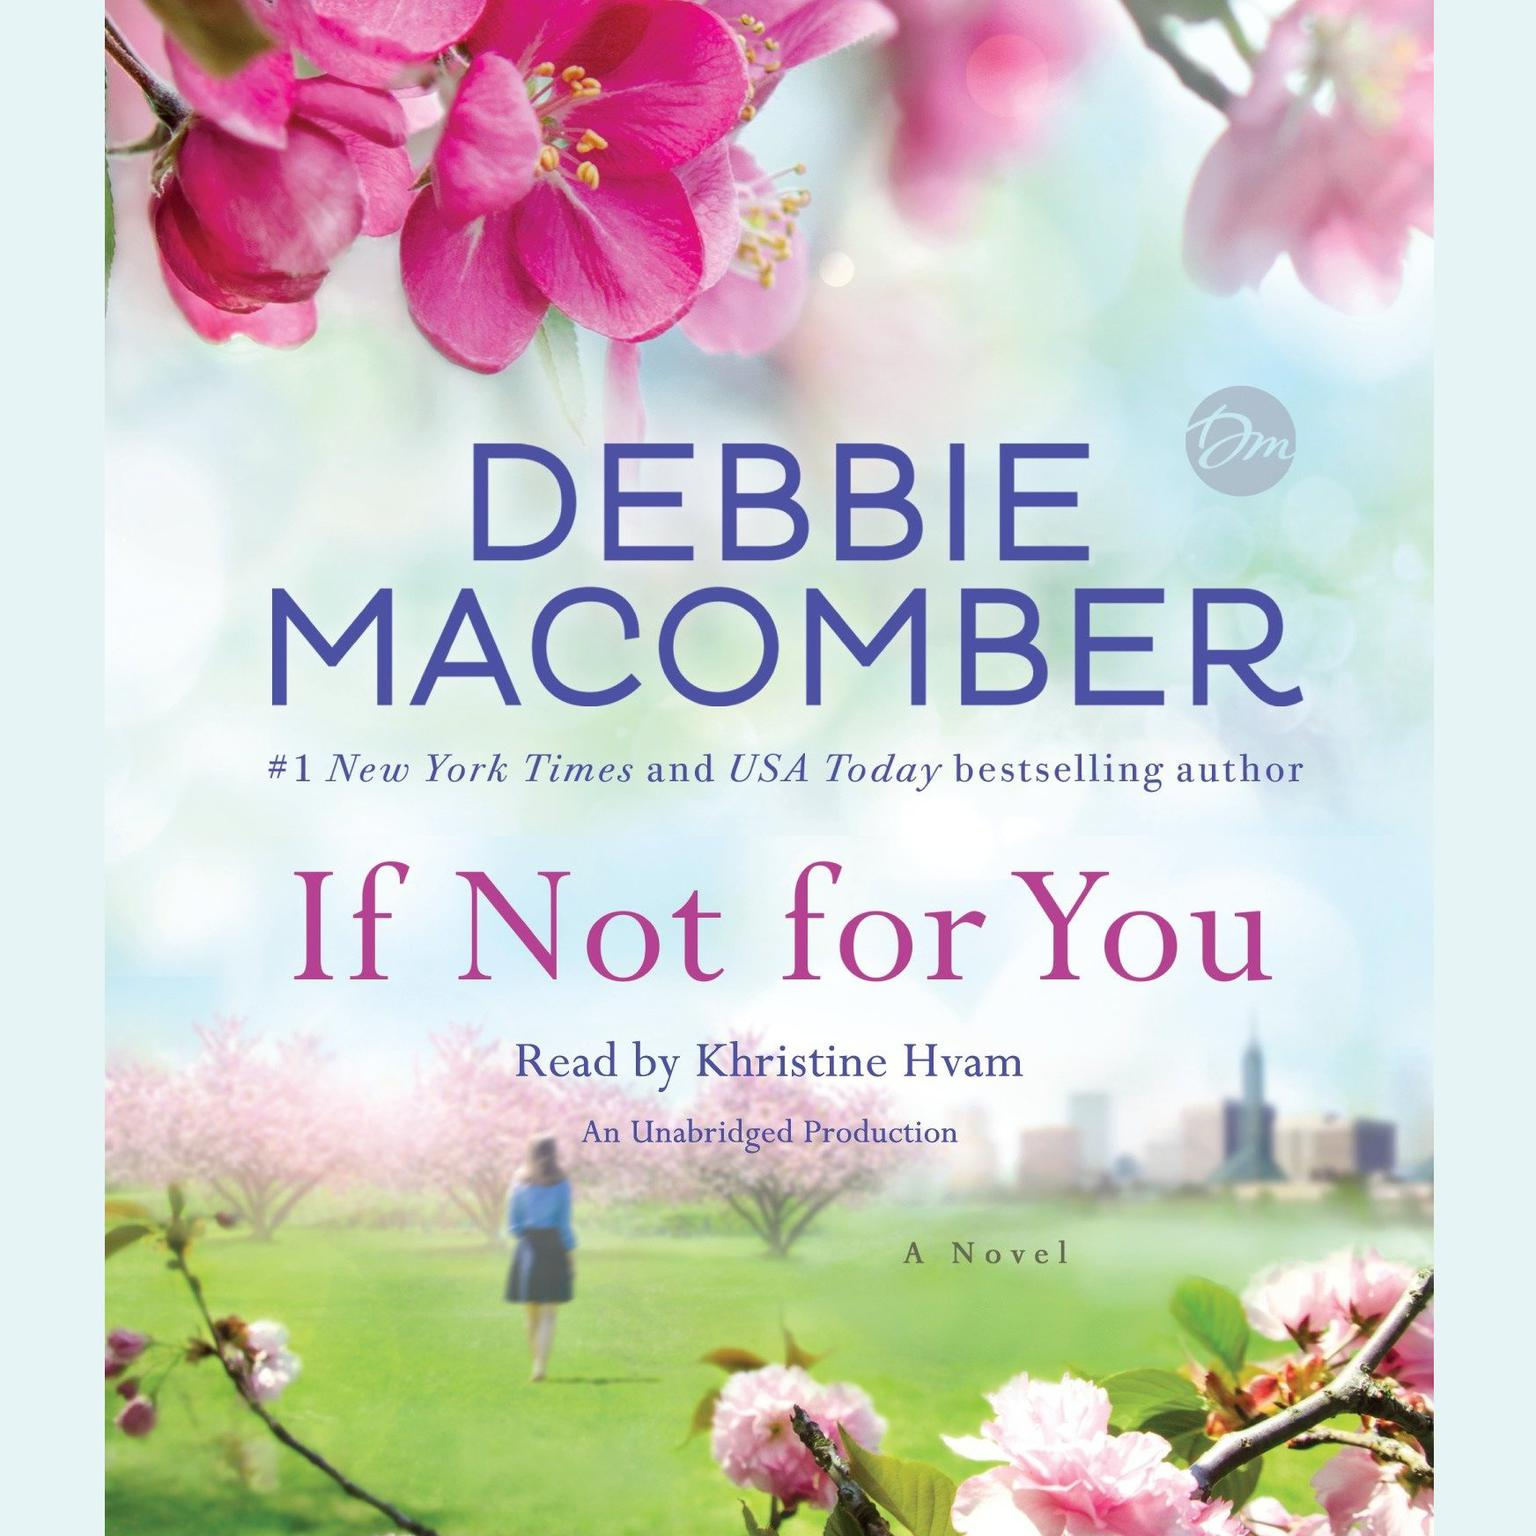 Download if not for you audiobook by debbie macomber for just 595 extended audio sample if not for you a novel audiobook by debbie macomber hexwebz Image collections